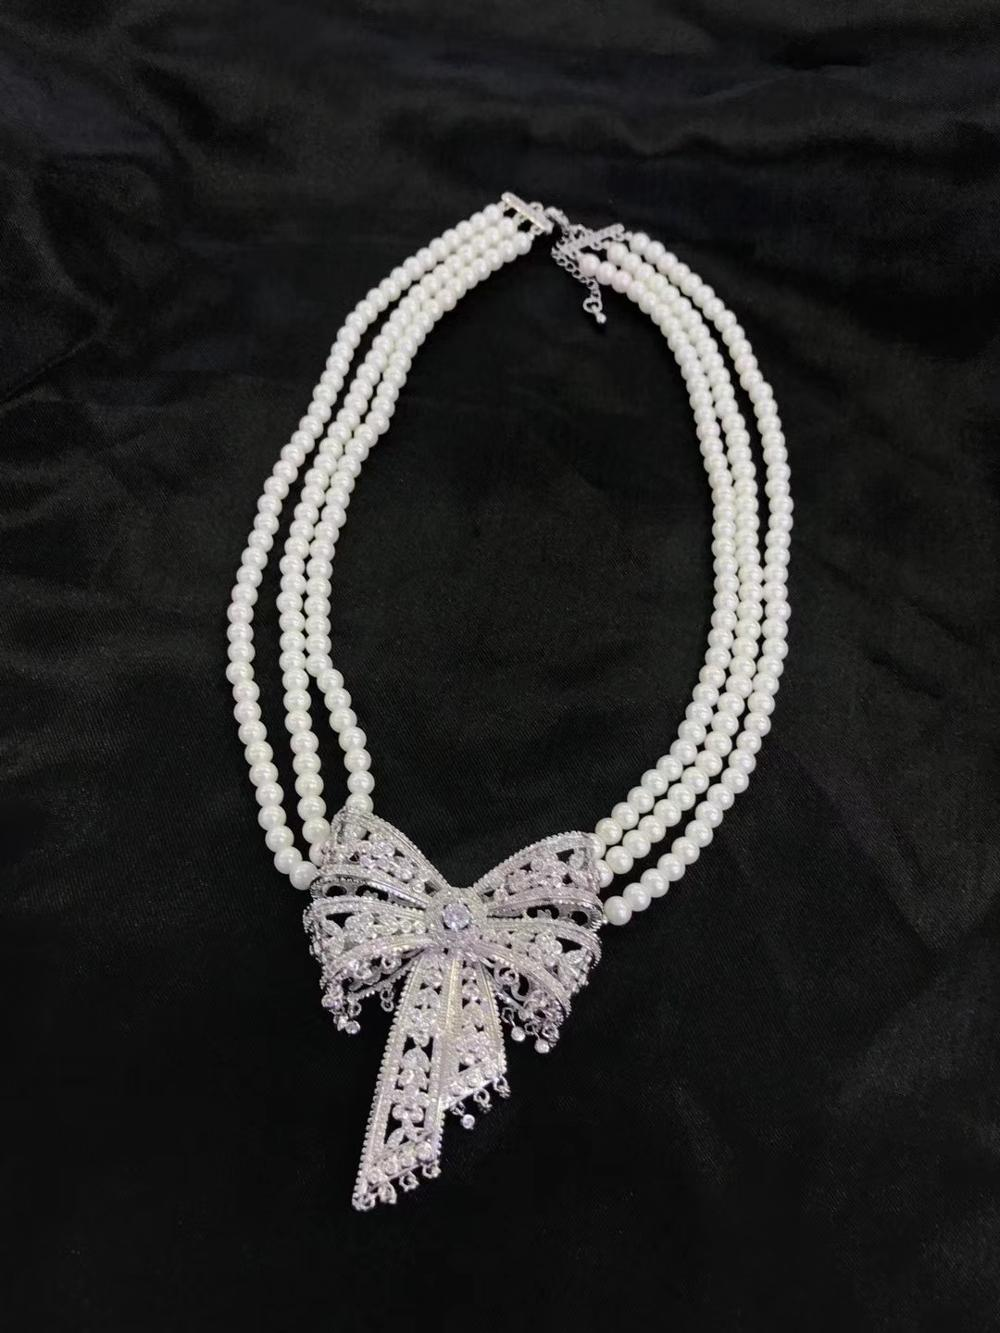 wholesale 3rows freshwater pearl white near round &butterfly clasp neklace 17-19inch FPPJ butterfly clasp